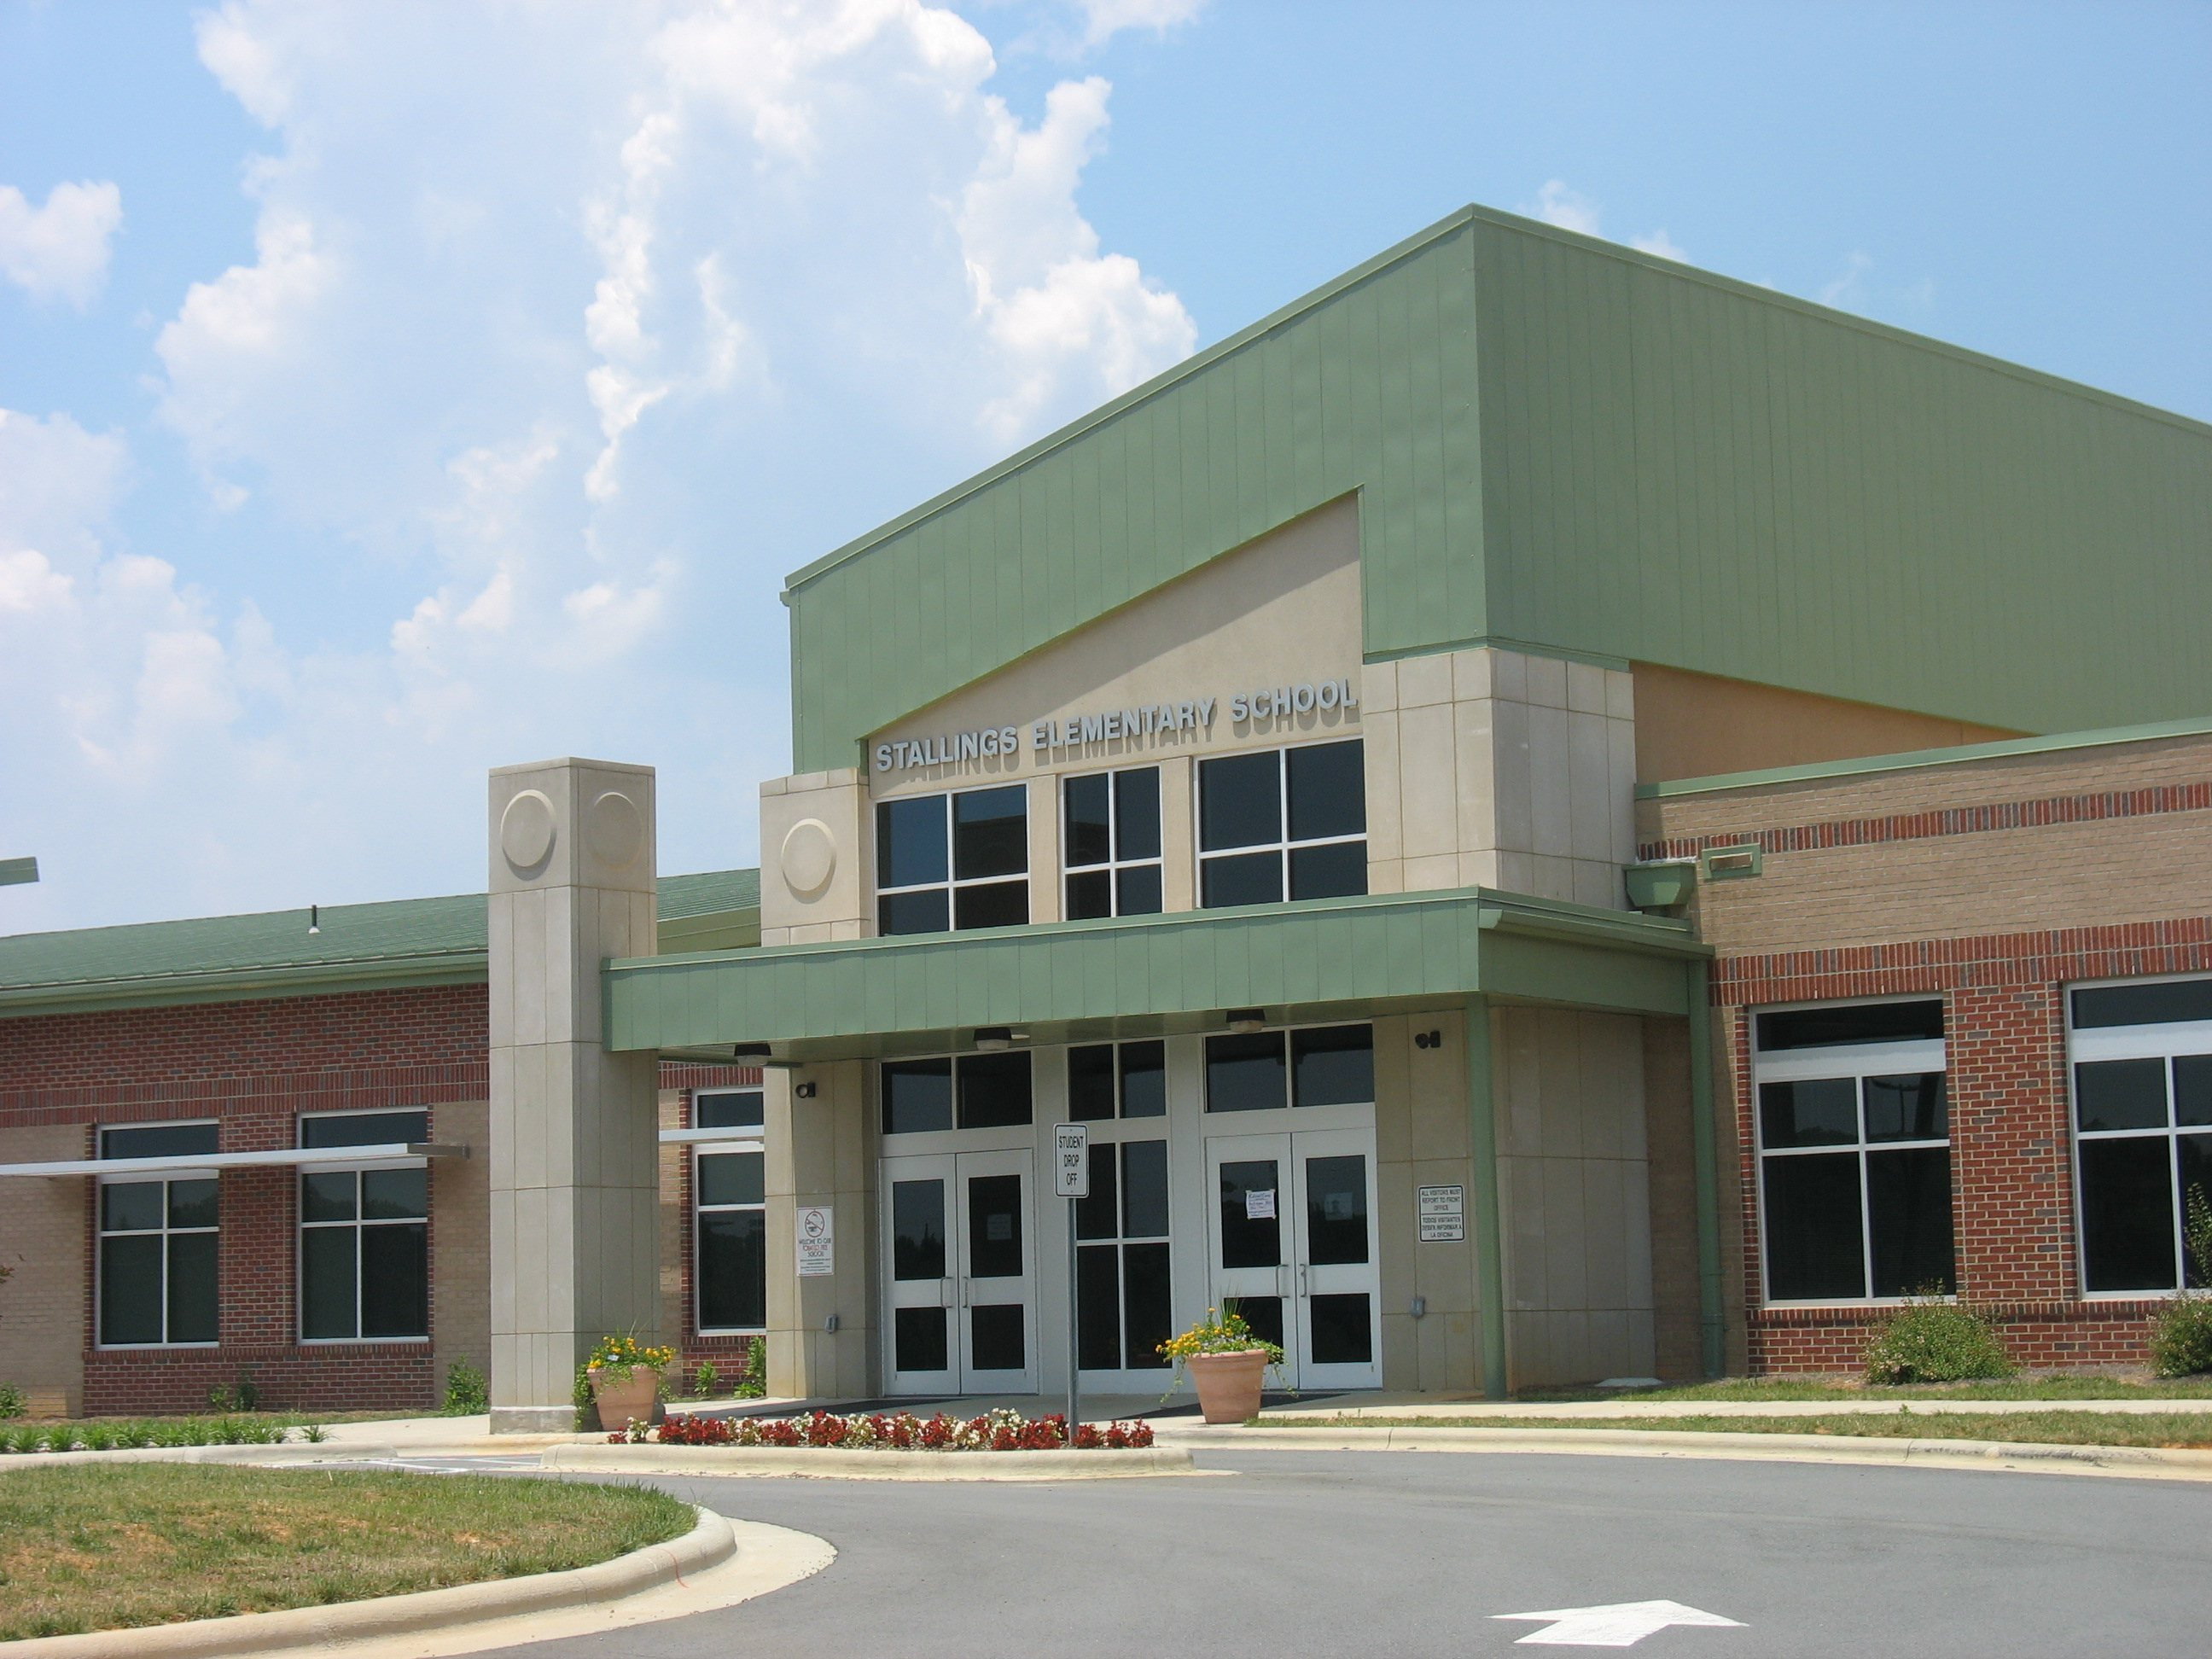 Stallings Elementary School in Union County NC